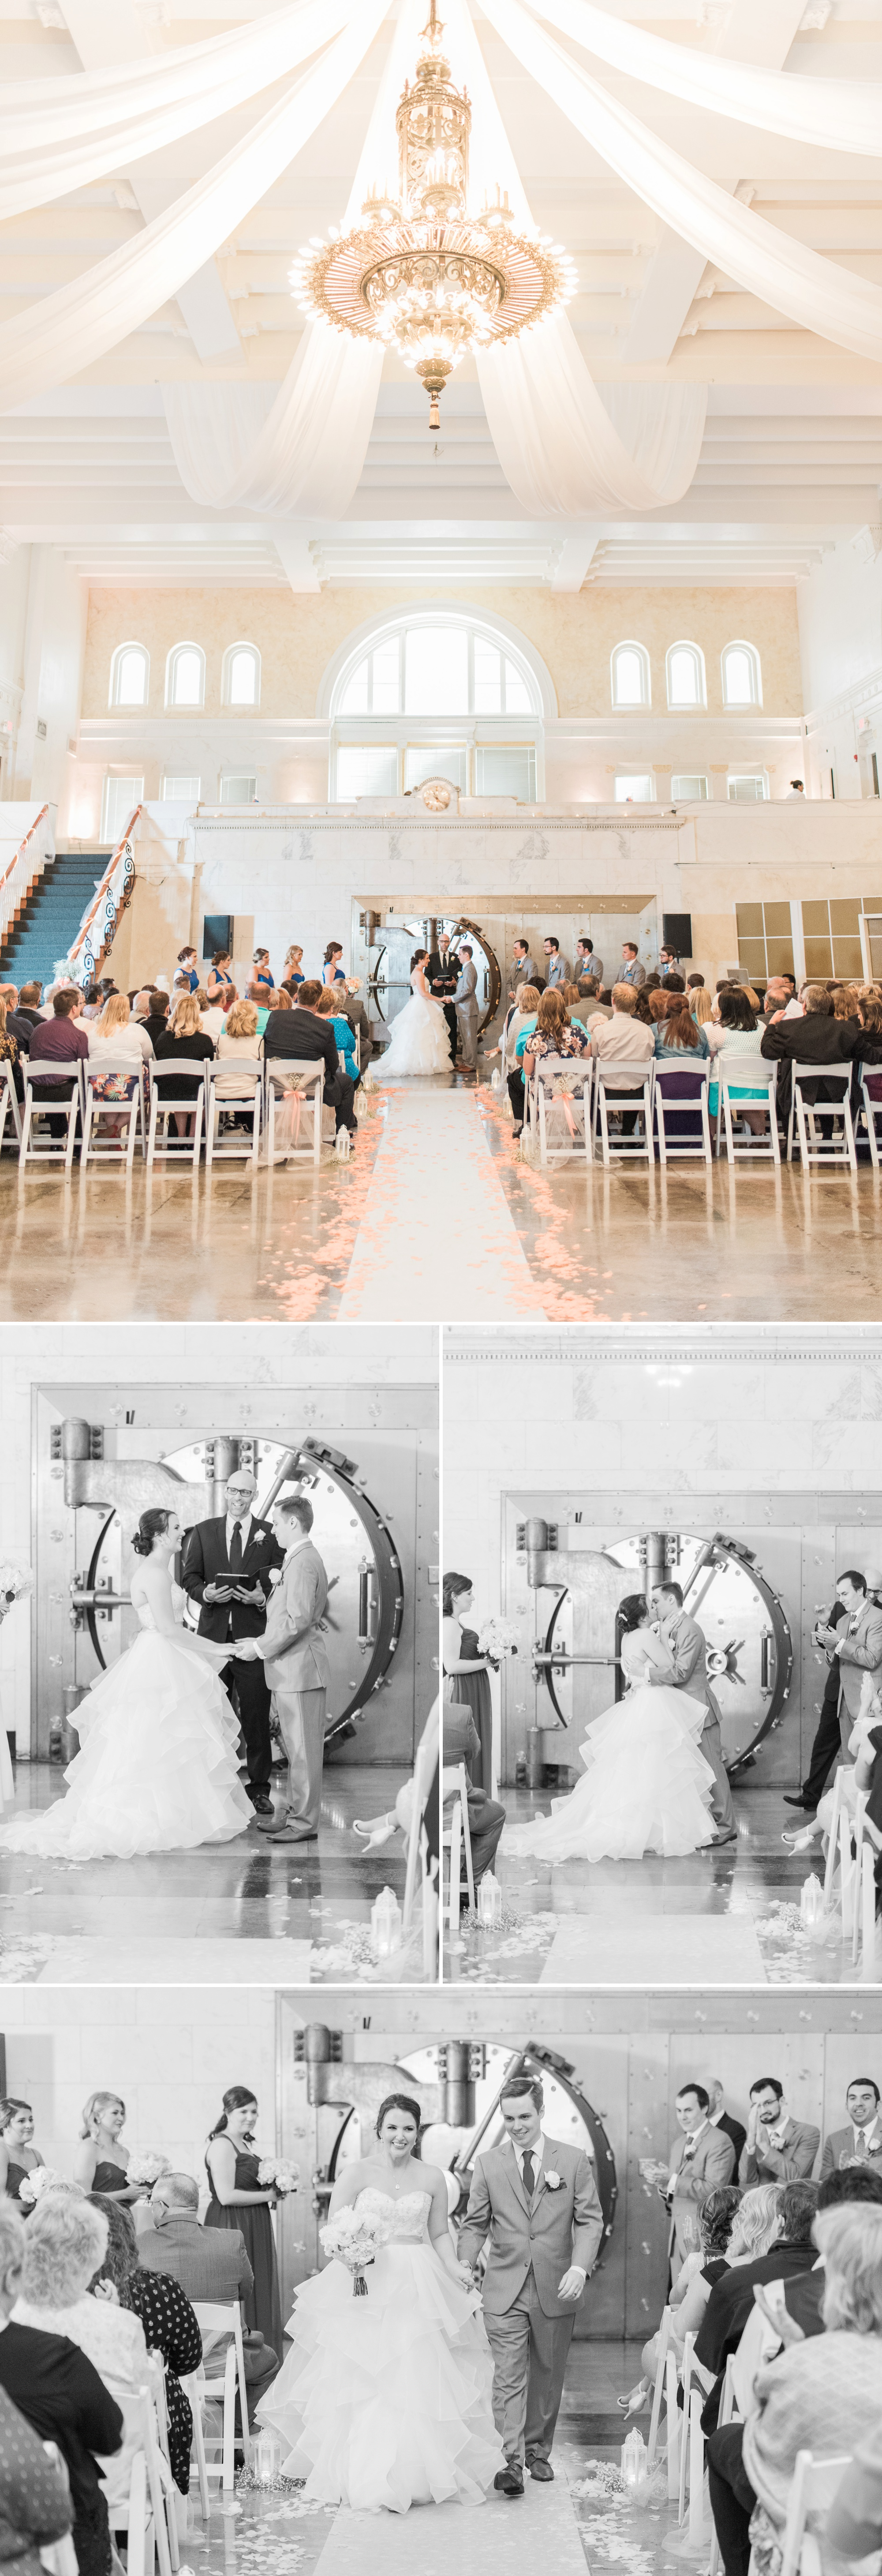 the-vault-columbus-ohio-wedding-emily-chris_0002.jpg